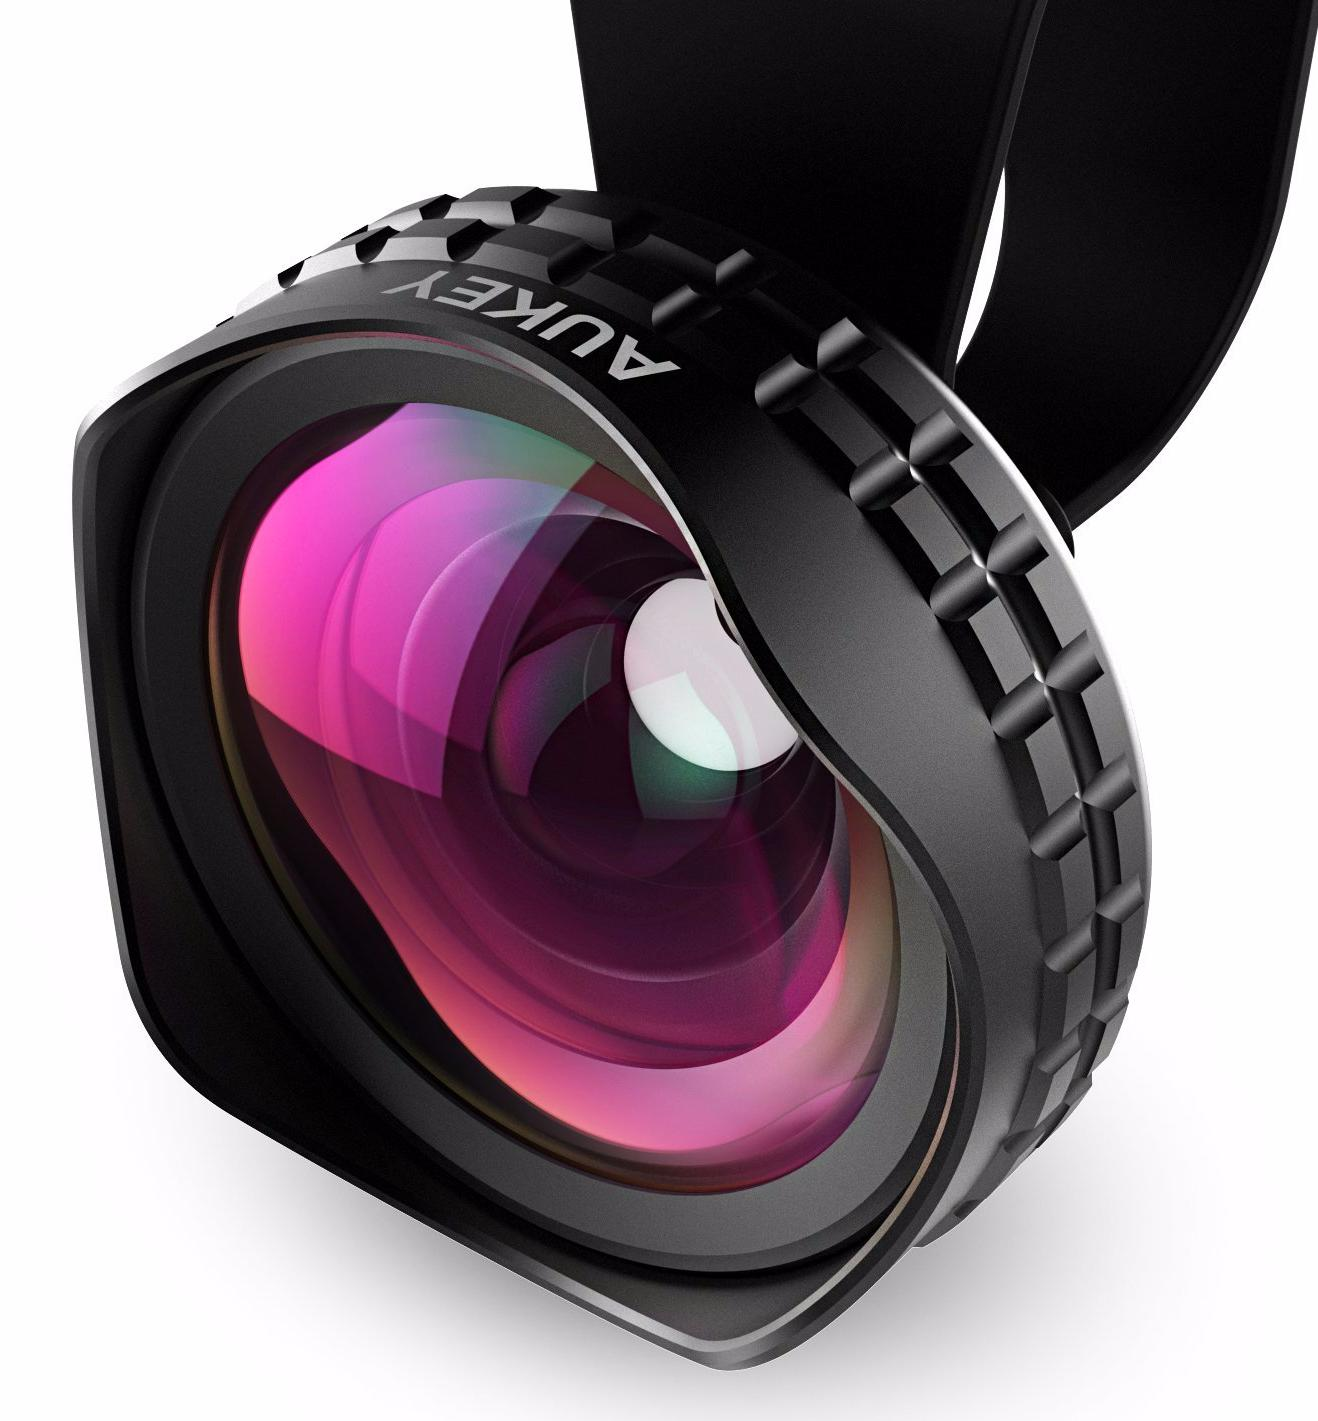 Optic Pro pickogen he 077 uv fisheye macro wide angle camera lens with led for iphone samsung pink